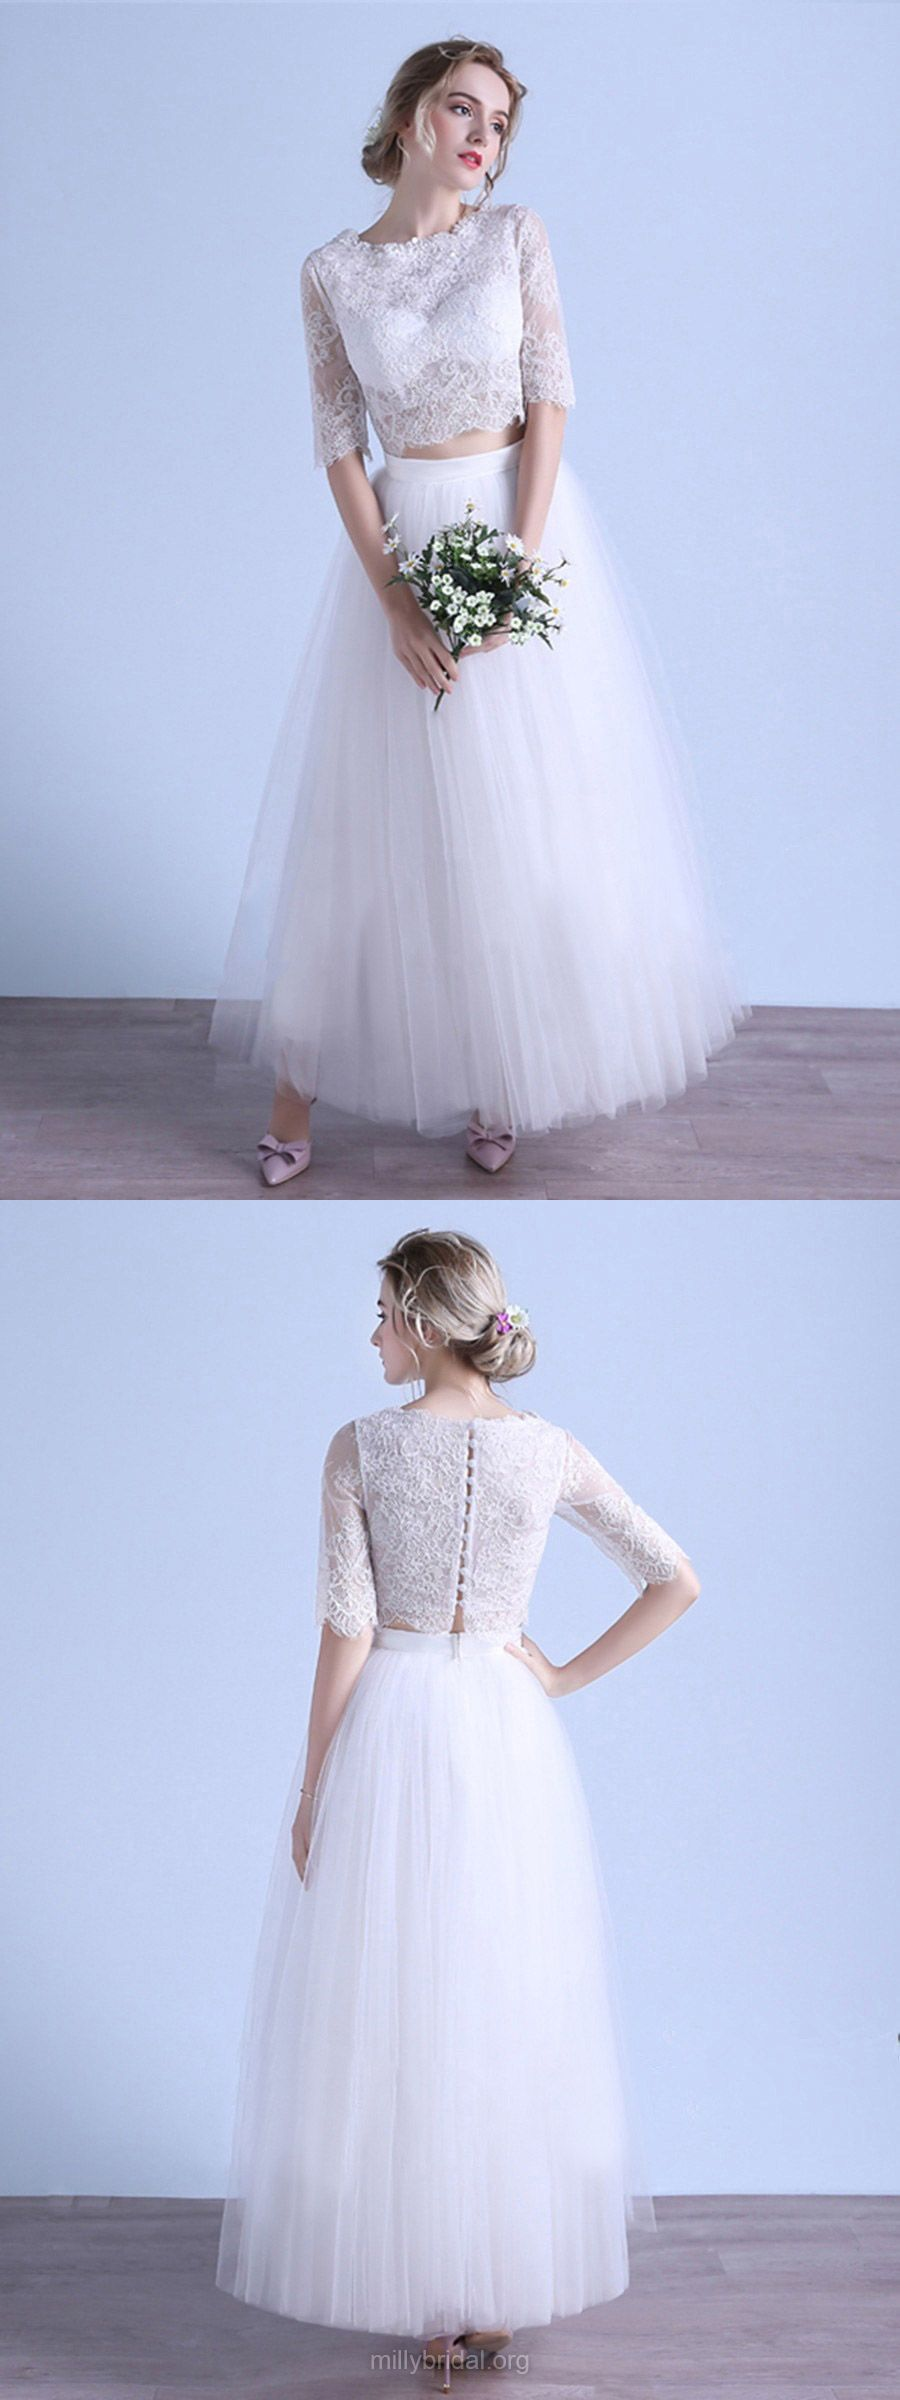 Two piece wedding dresses lace exclusive aline wedding dresses